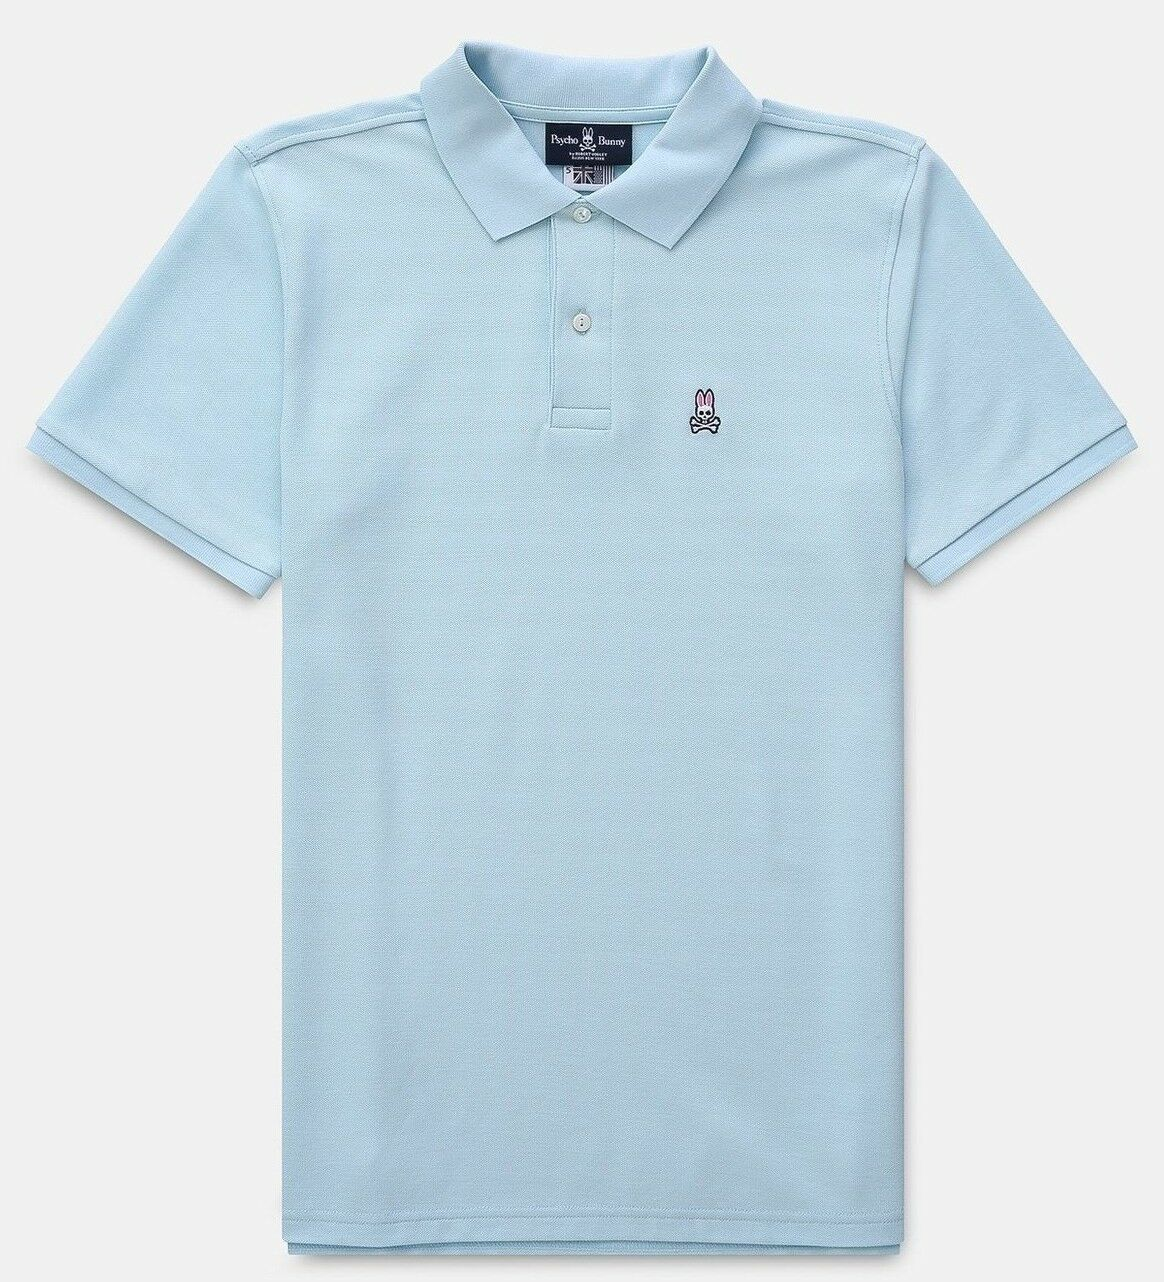 Psycho Bunny Men's Cerulean bluee Embroidered Logo Pima Cotton Classic Fit Polo